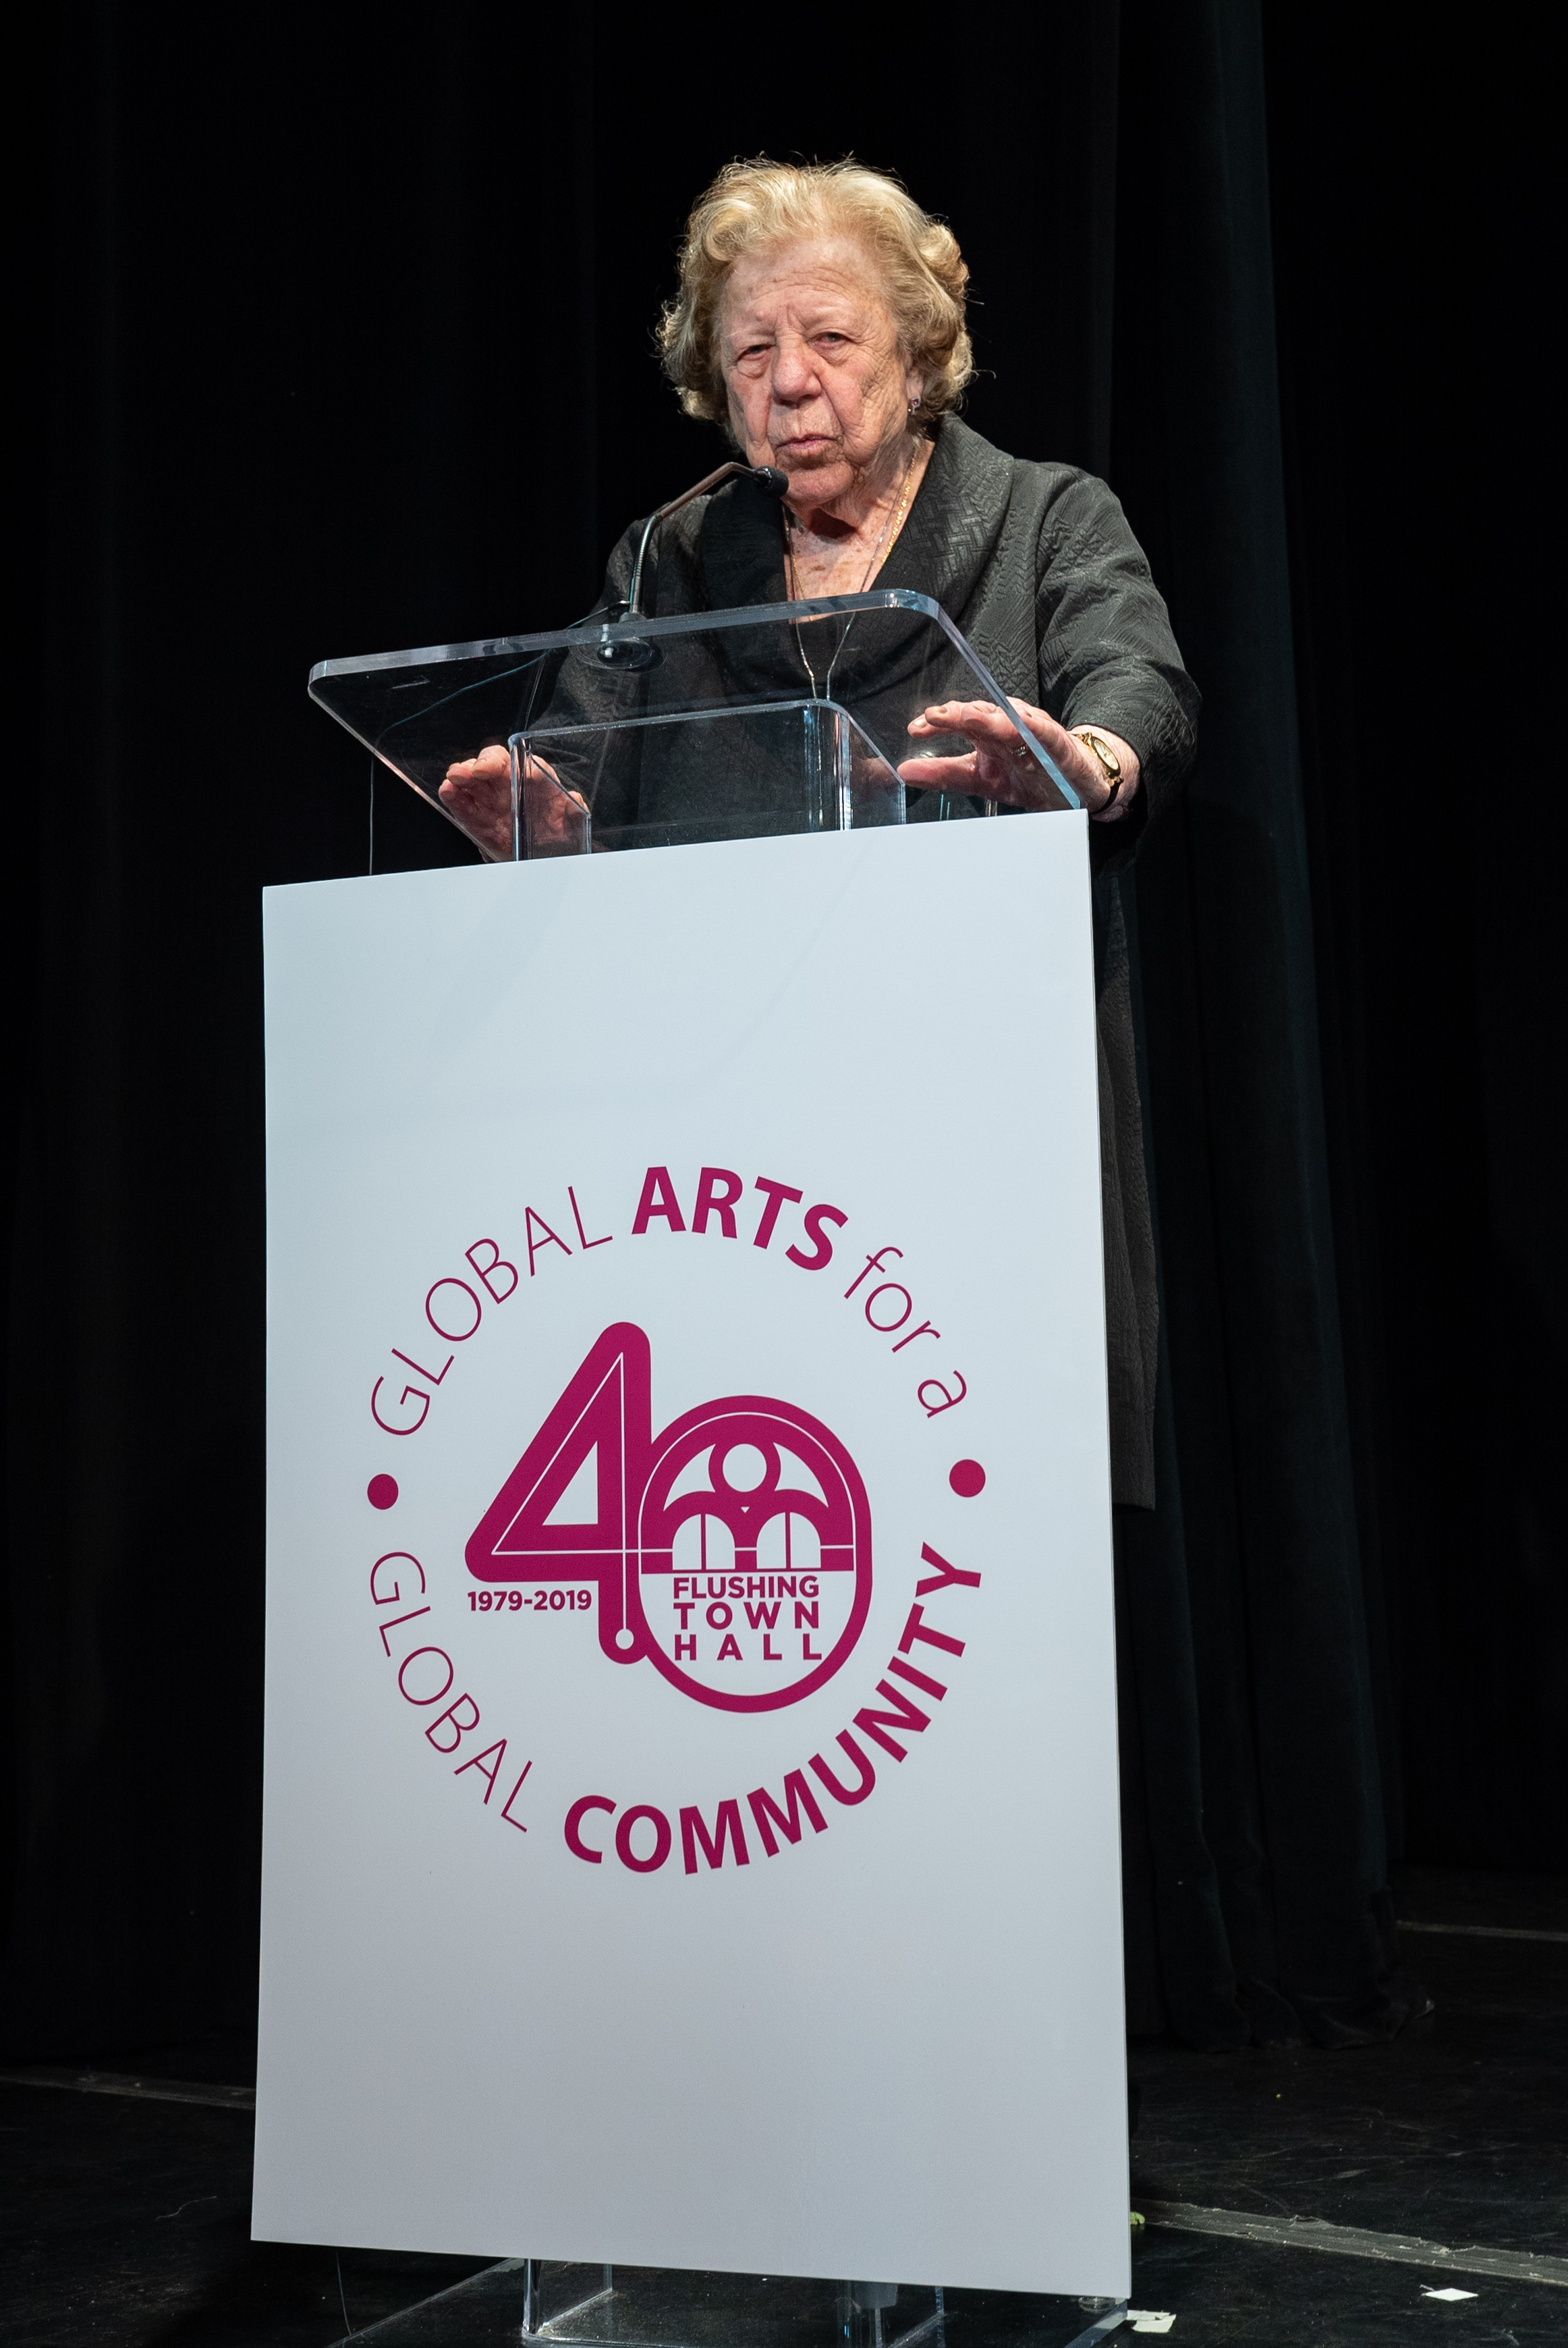 Flushing Town Hall held its 40th annual gala on June 6, 2019. Pictured is honoree Claire Shulman, former Queens Borough President.